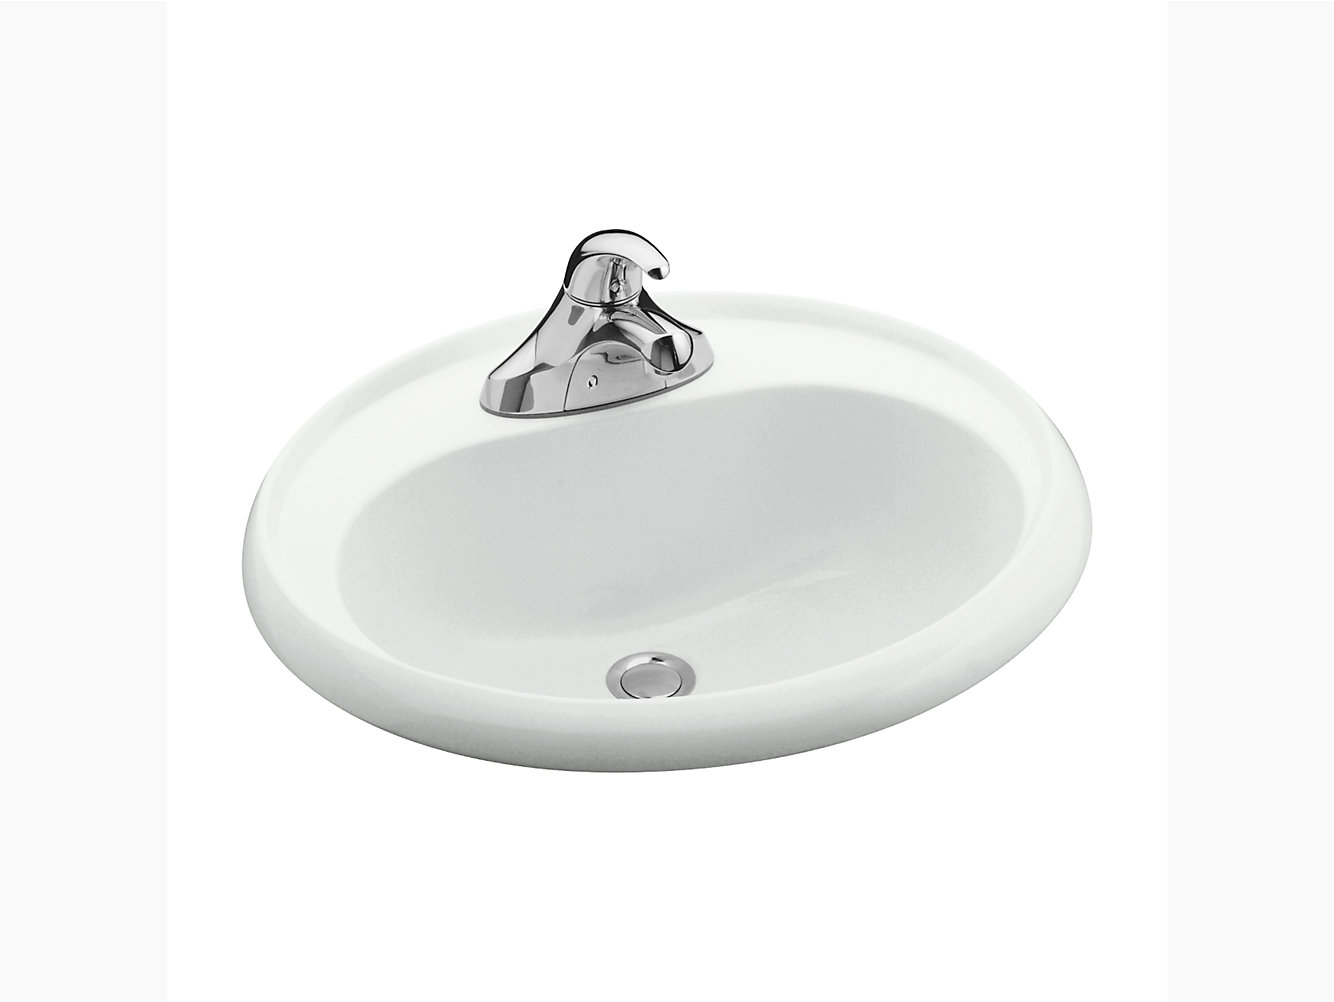 Oval Lavatory X STERLING - Black drop in bathroom sink